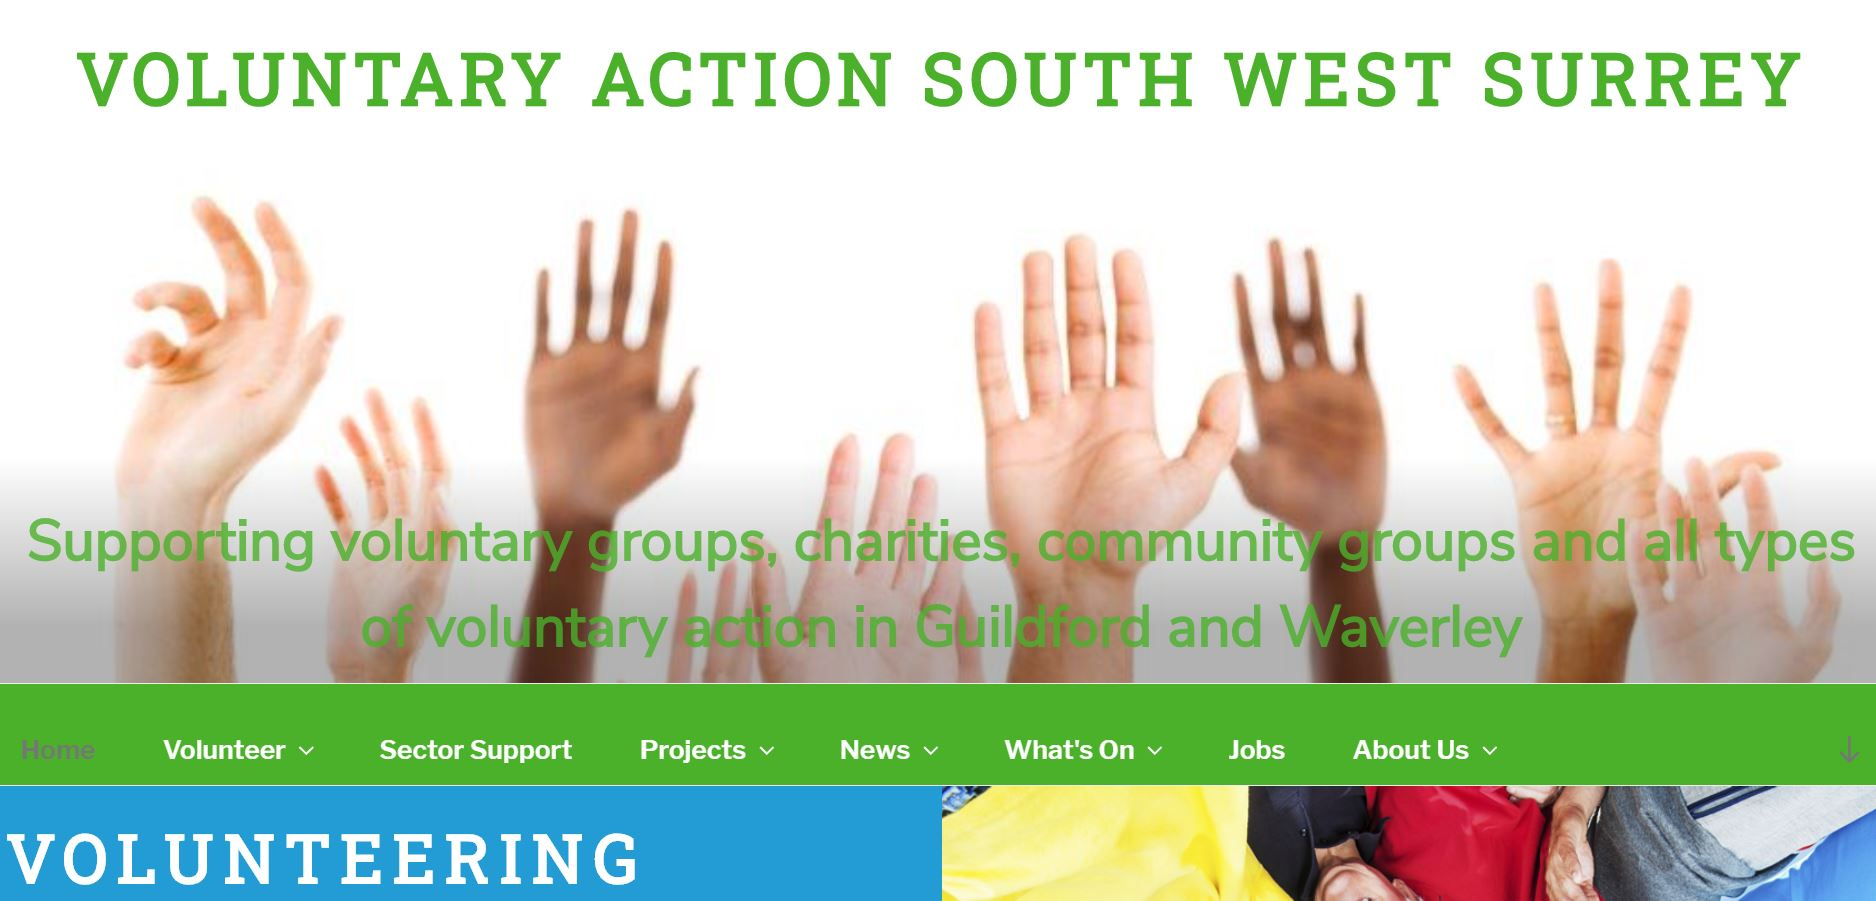 Voluntary Action South West Surrey